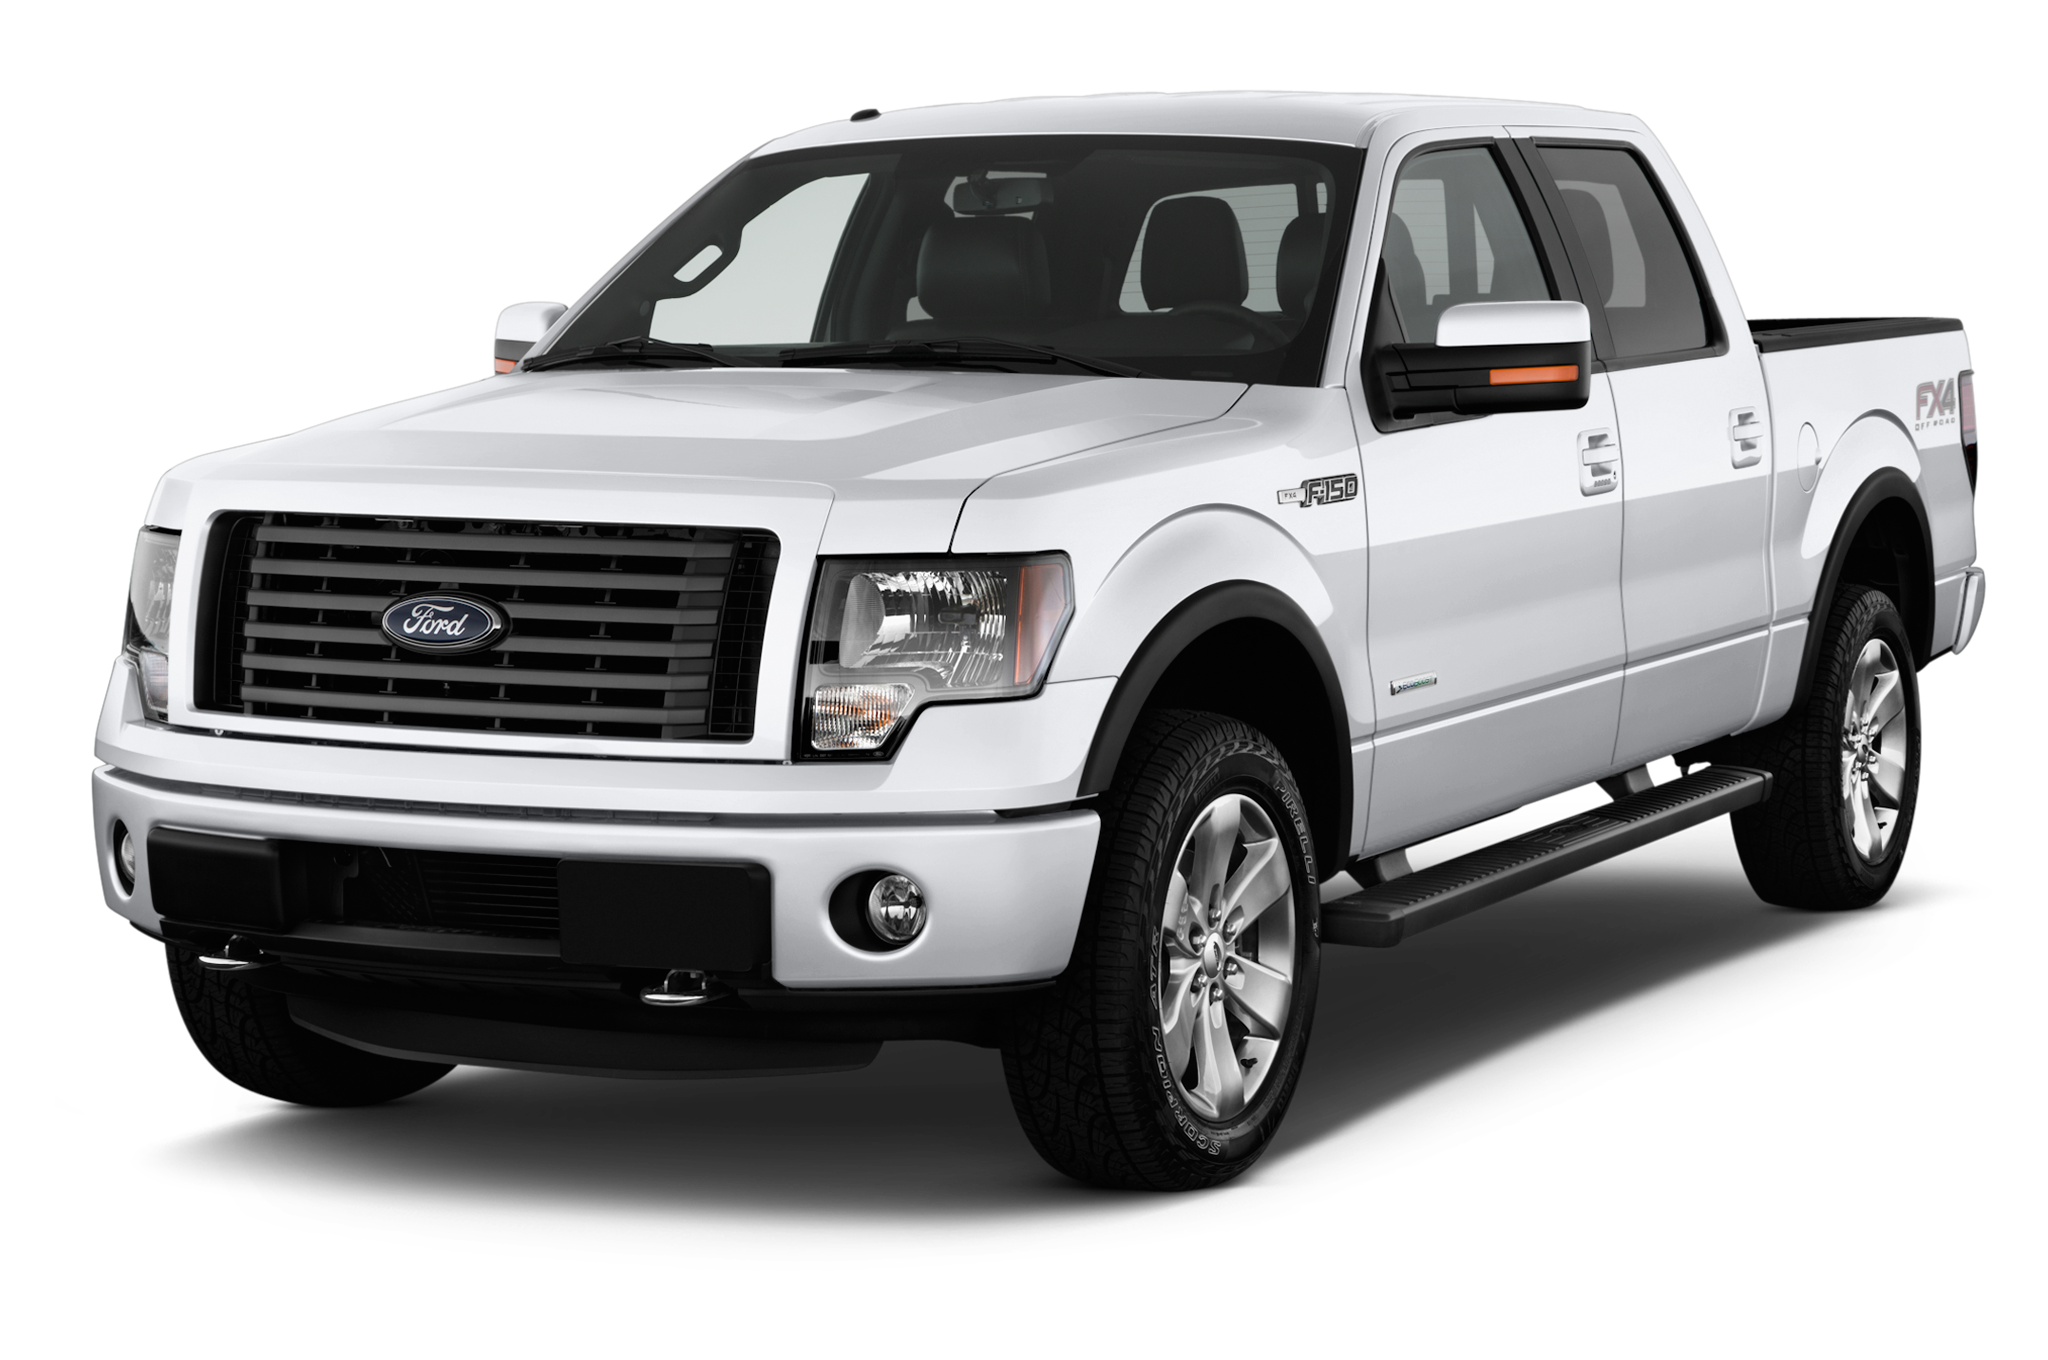 2013 ford f 150 specs and features msn autos. Black Bedroom Furniture Sets. Home Design Ideas